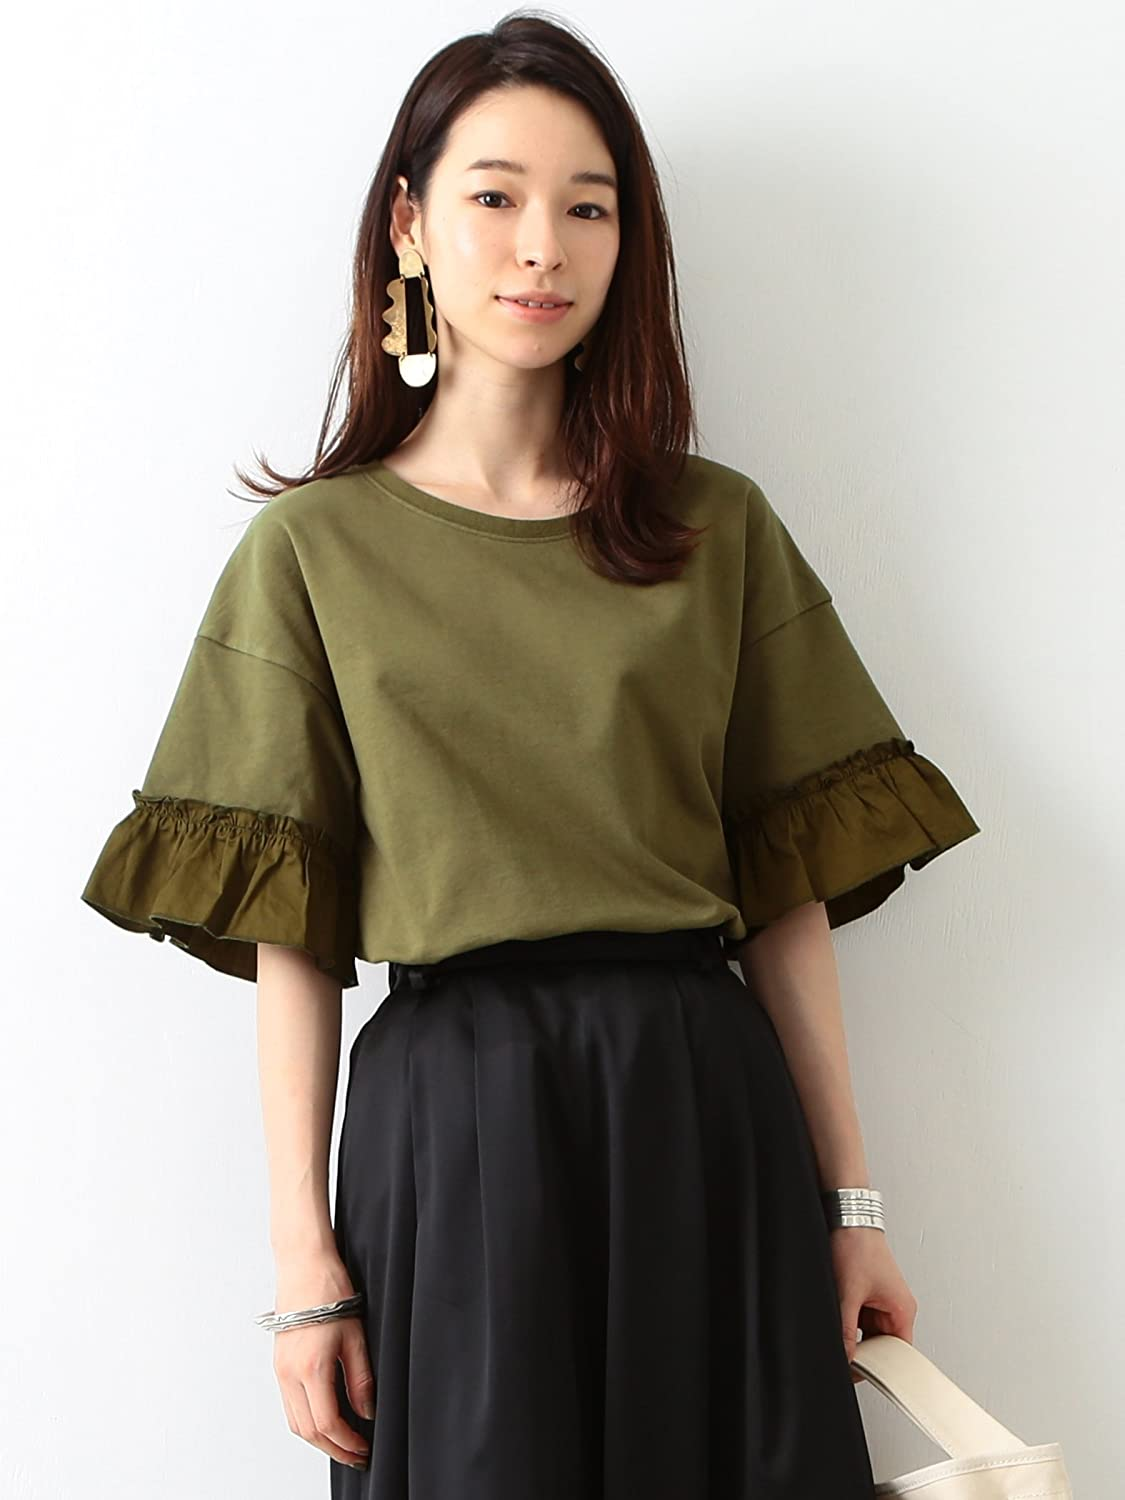 Amazon | (レイビームス) Ray BEAMS サテンギャザーSV PO ONE SIZE OLIVE | Amazon Fashion 通販